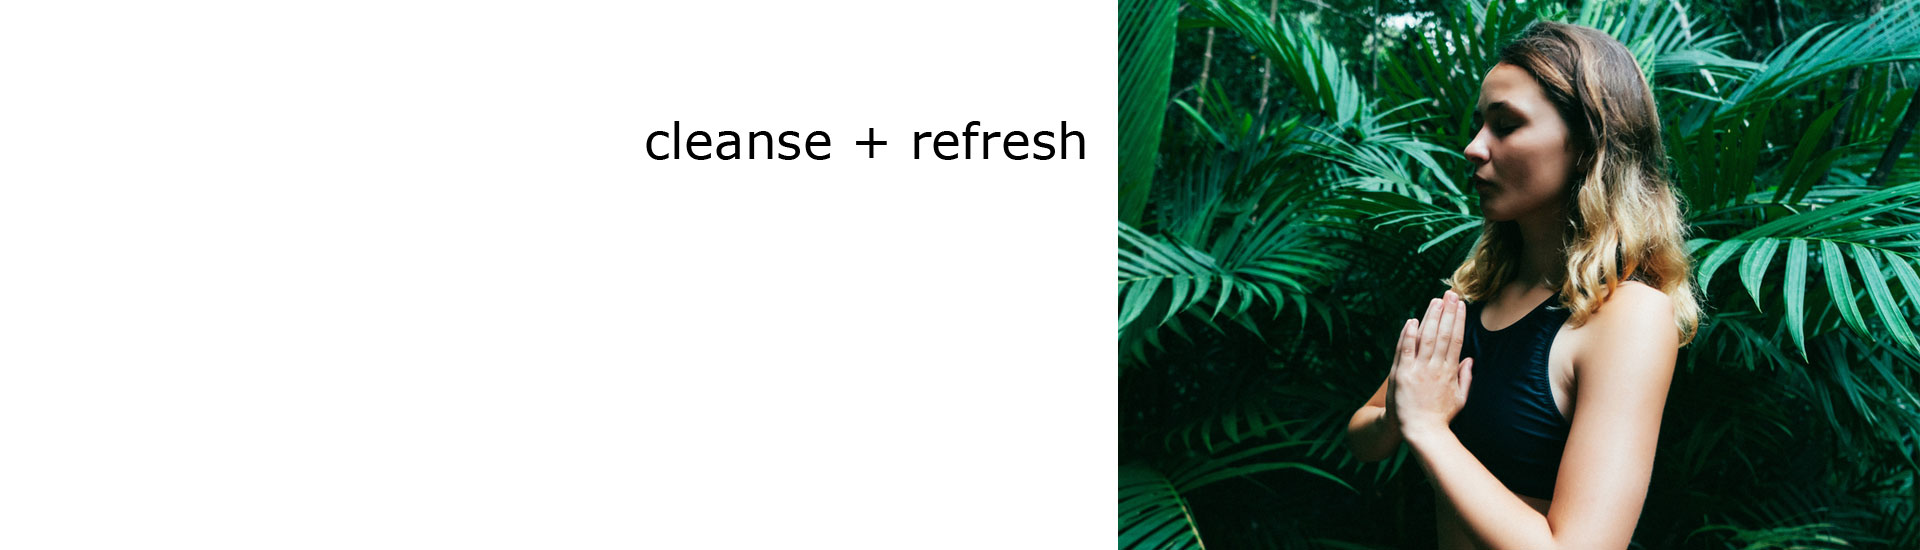 cleanse + refresh